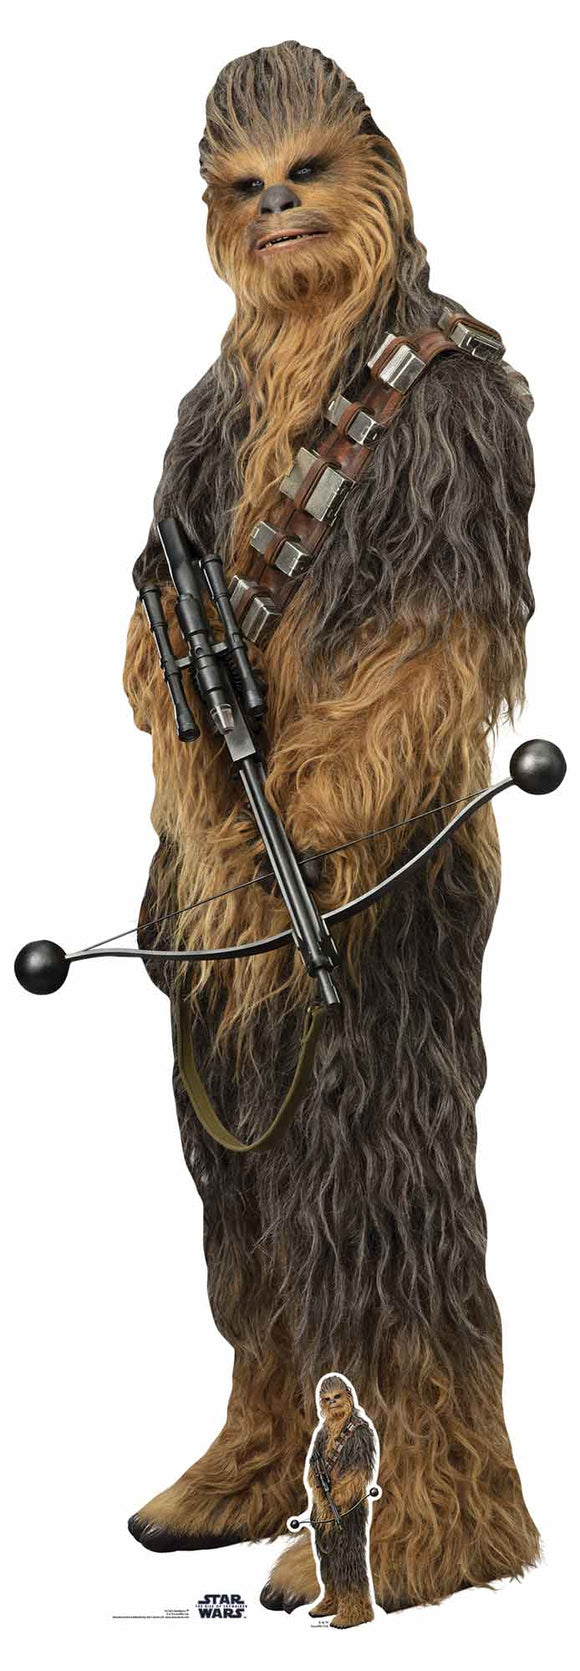 Star Wars Chewbacca Lifesize Cutout The Rise of Skywalker